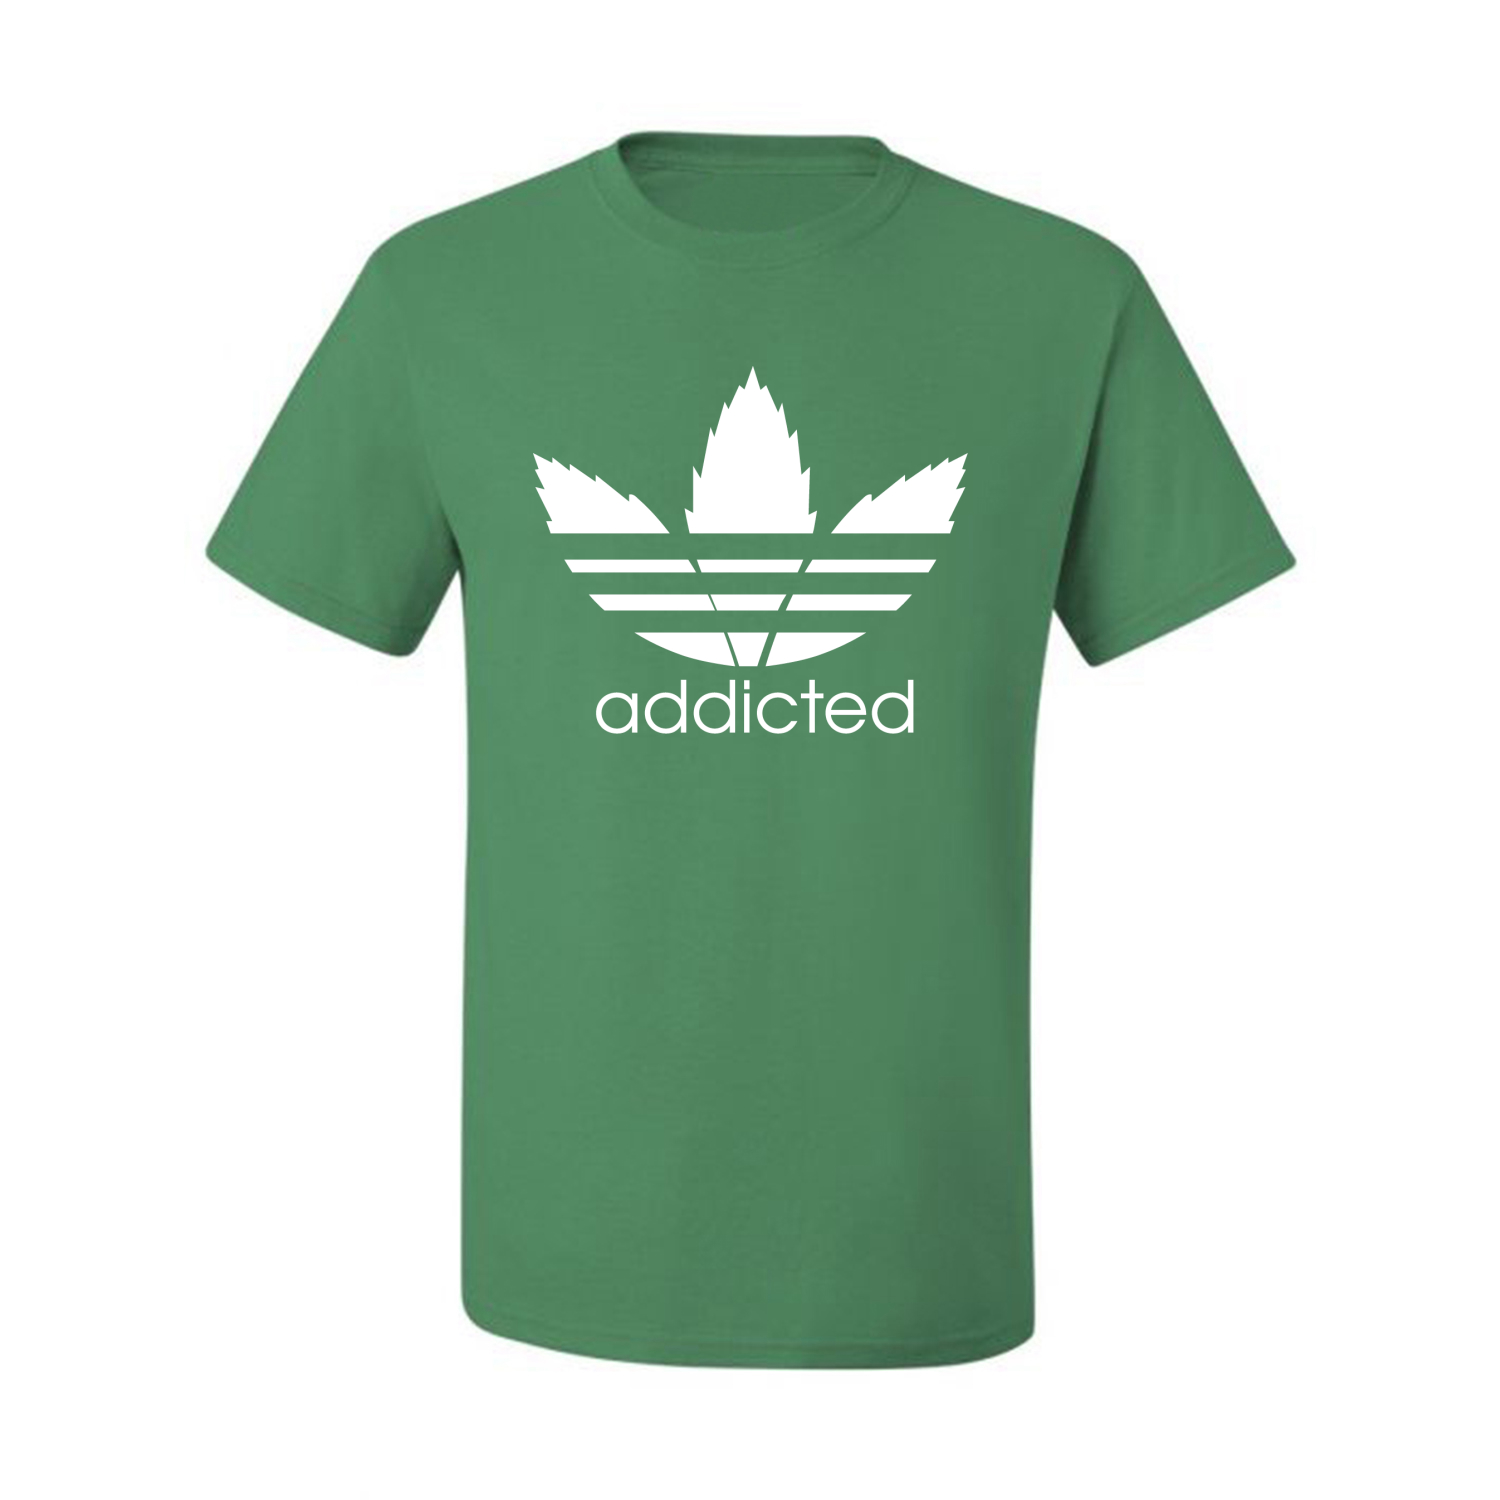 Addicted-White-Pot-Leaf-Mens-Weed-T-Shirt-Graphic-Parody-Tee thumbnail 14